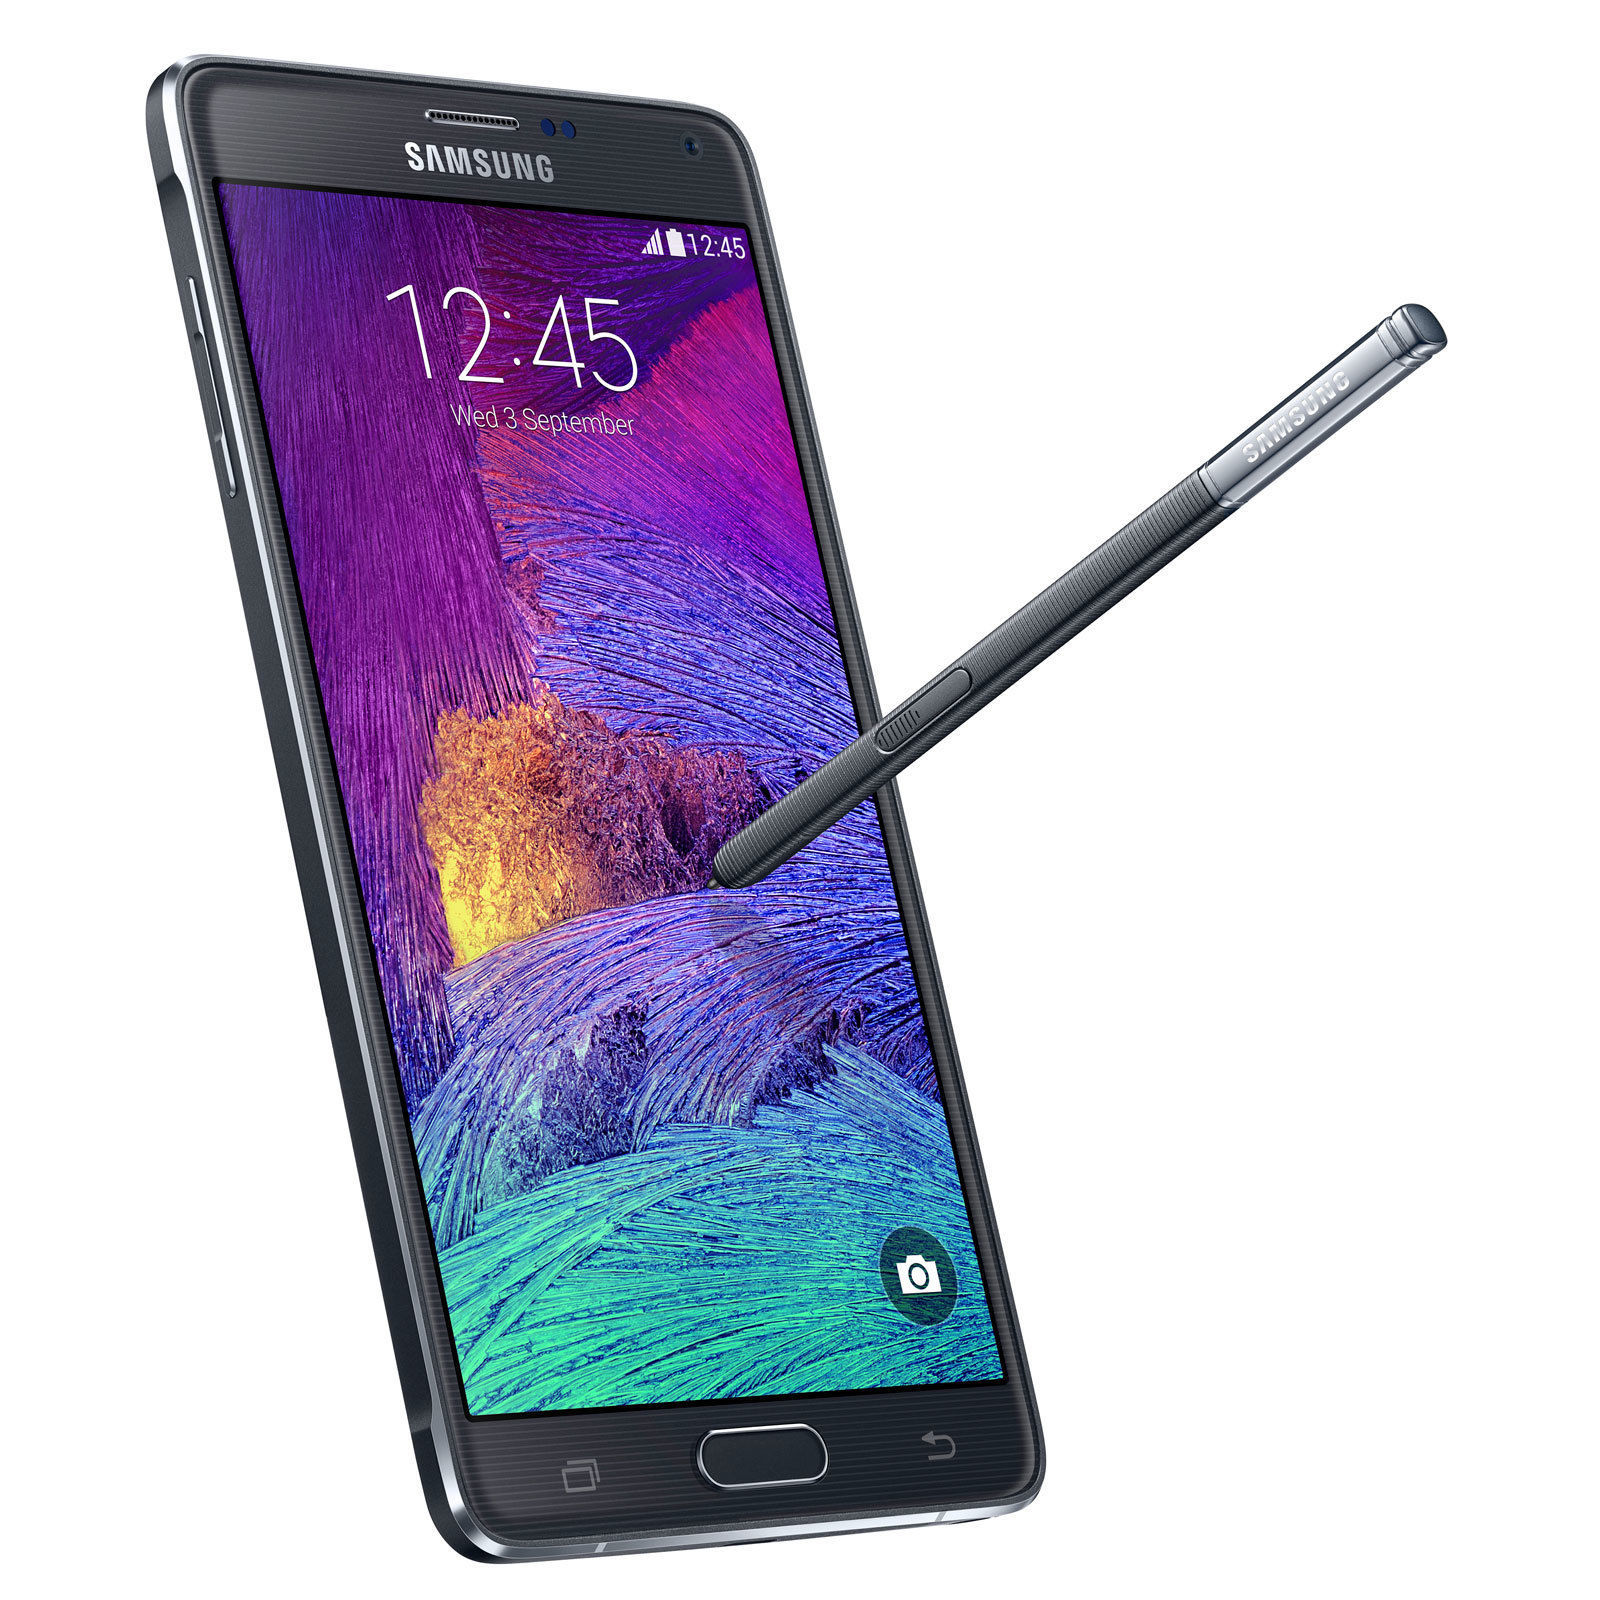 Galaxy Note 4 - 32 Go - Noir - Reconditionné